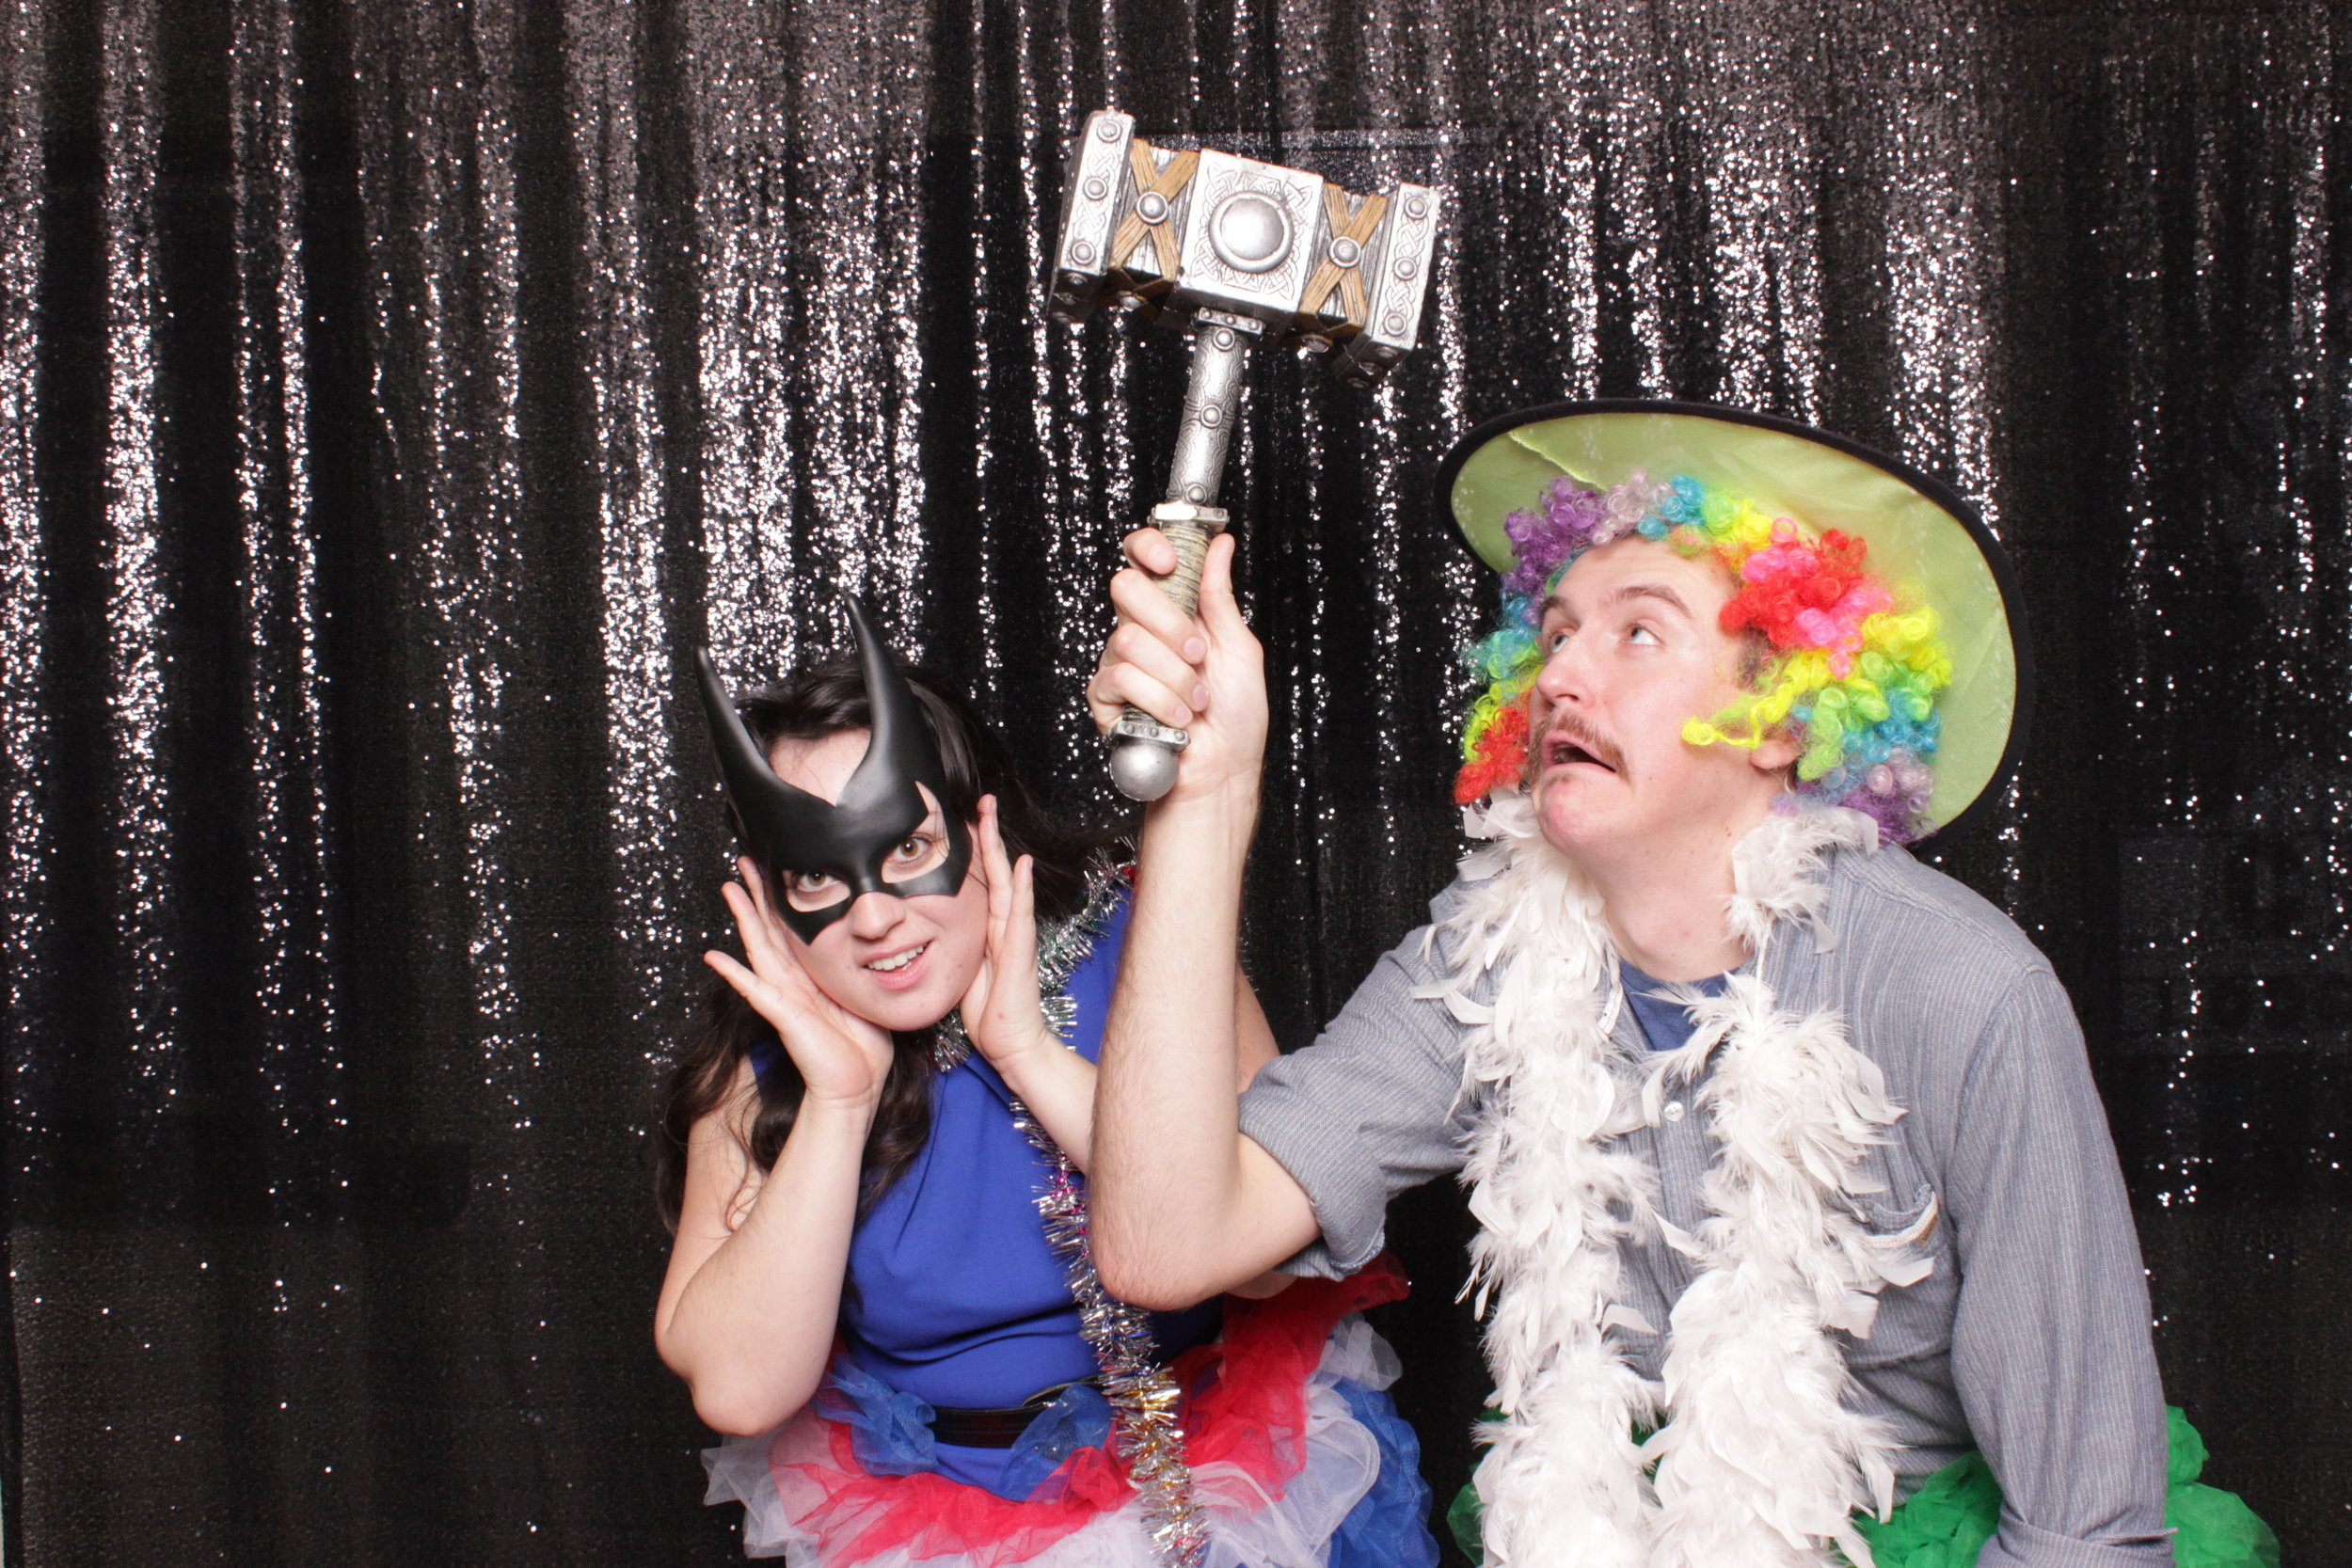 costco-prints-chico-trebooth-photo-booth-rental.jpg